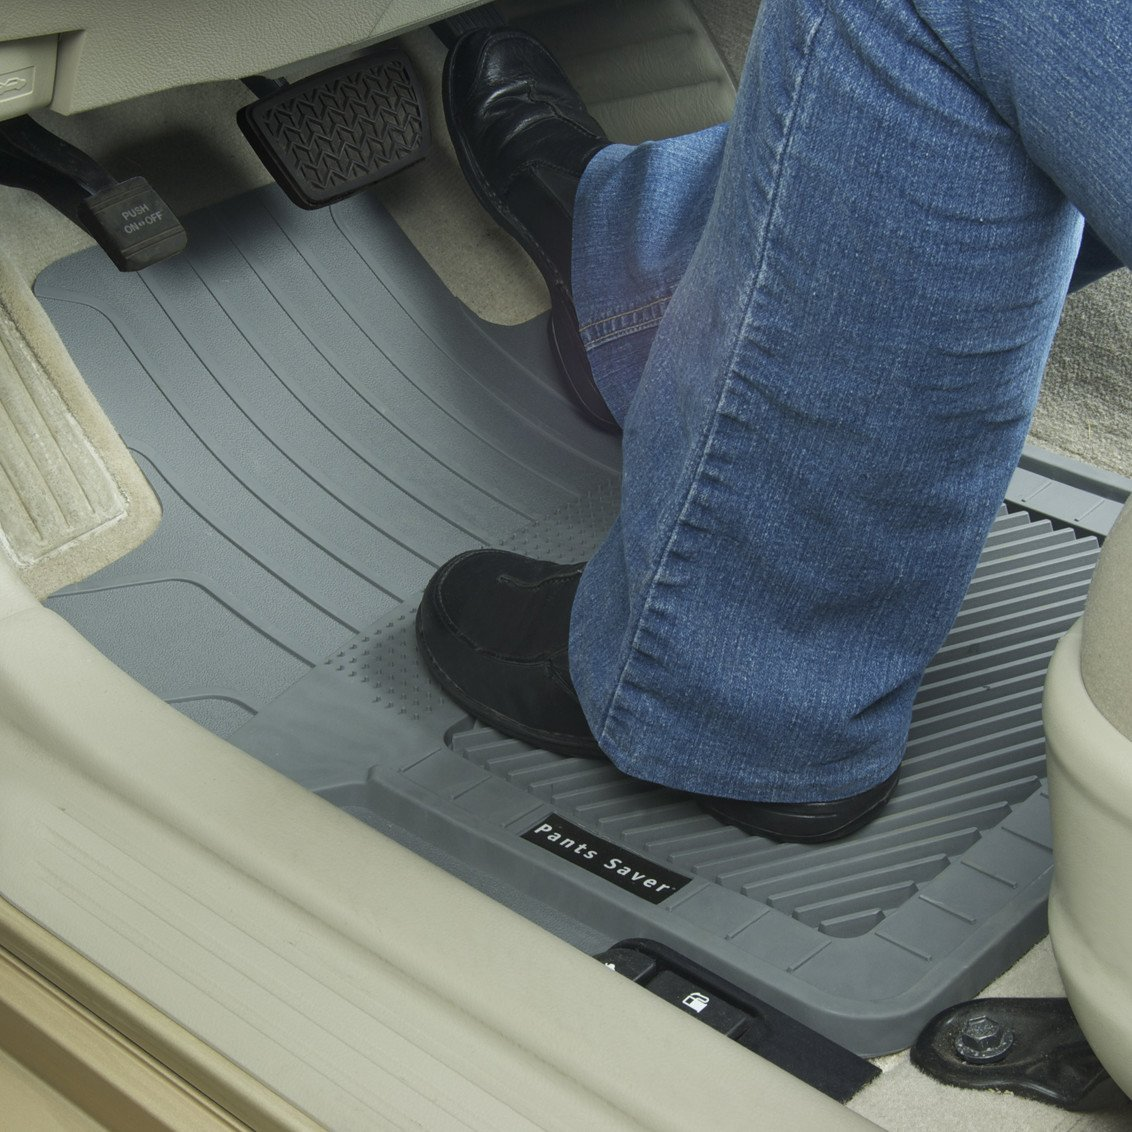 Gray PantsSaver 1407152 Car Mat